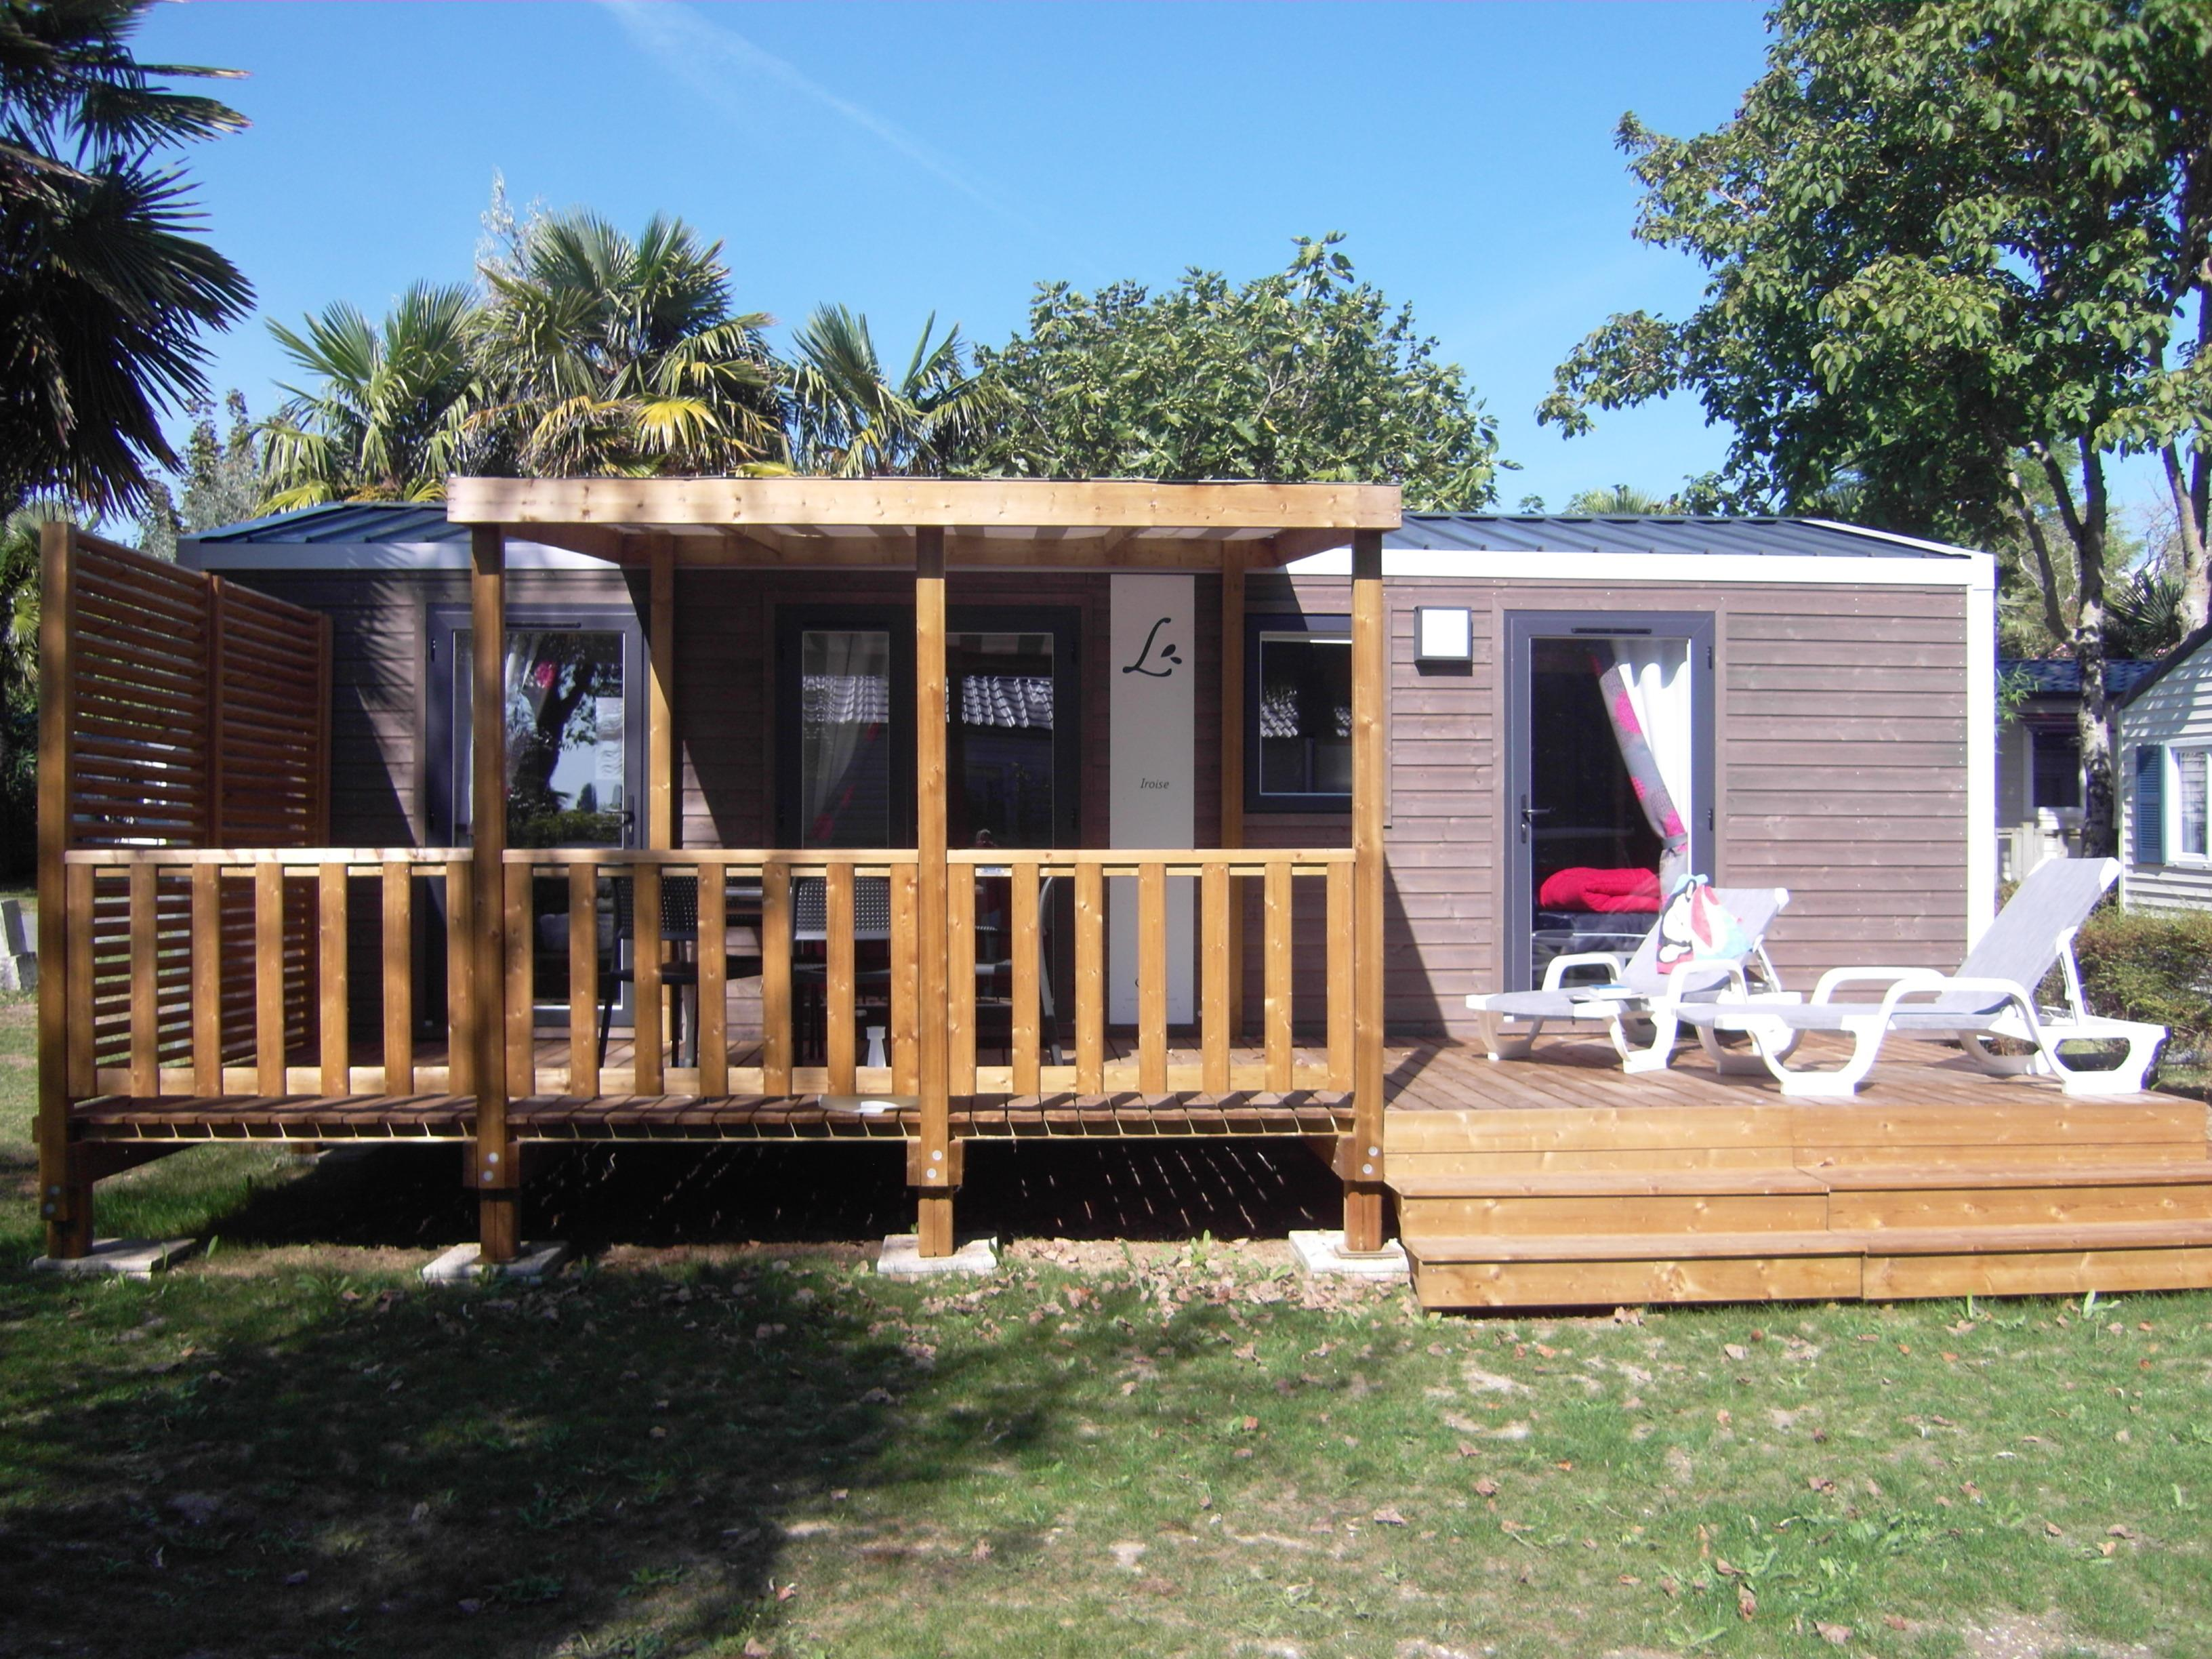 Location - Chalet Iroise 2 Chambres 4Pers Incluse 2 Sdb 2 Wc (S) - Camping Airotel Oléron